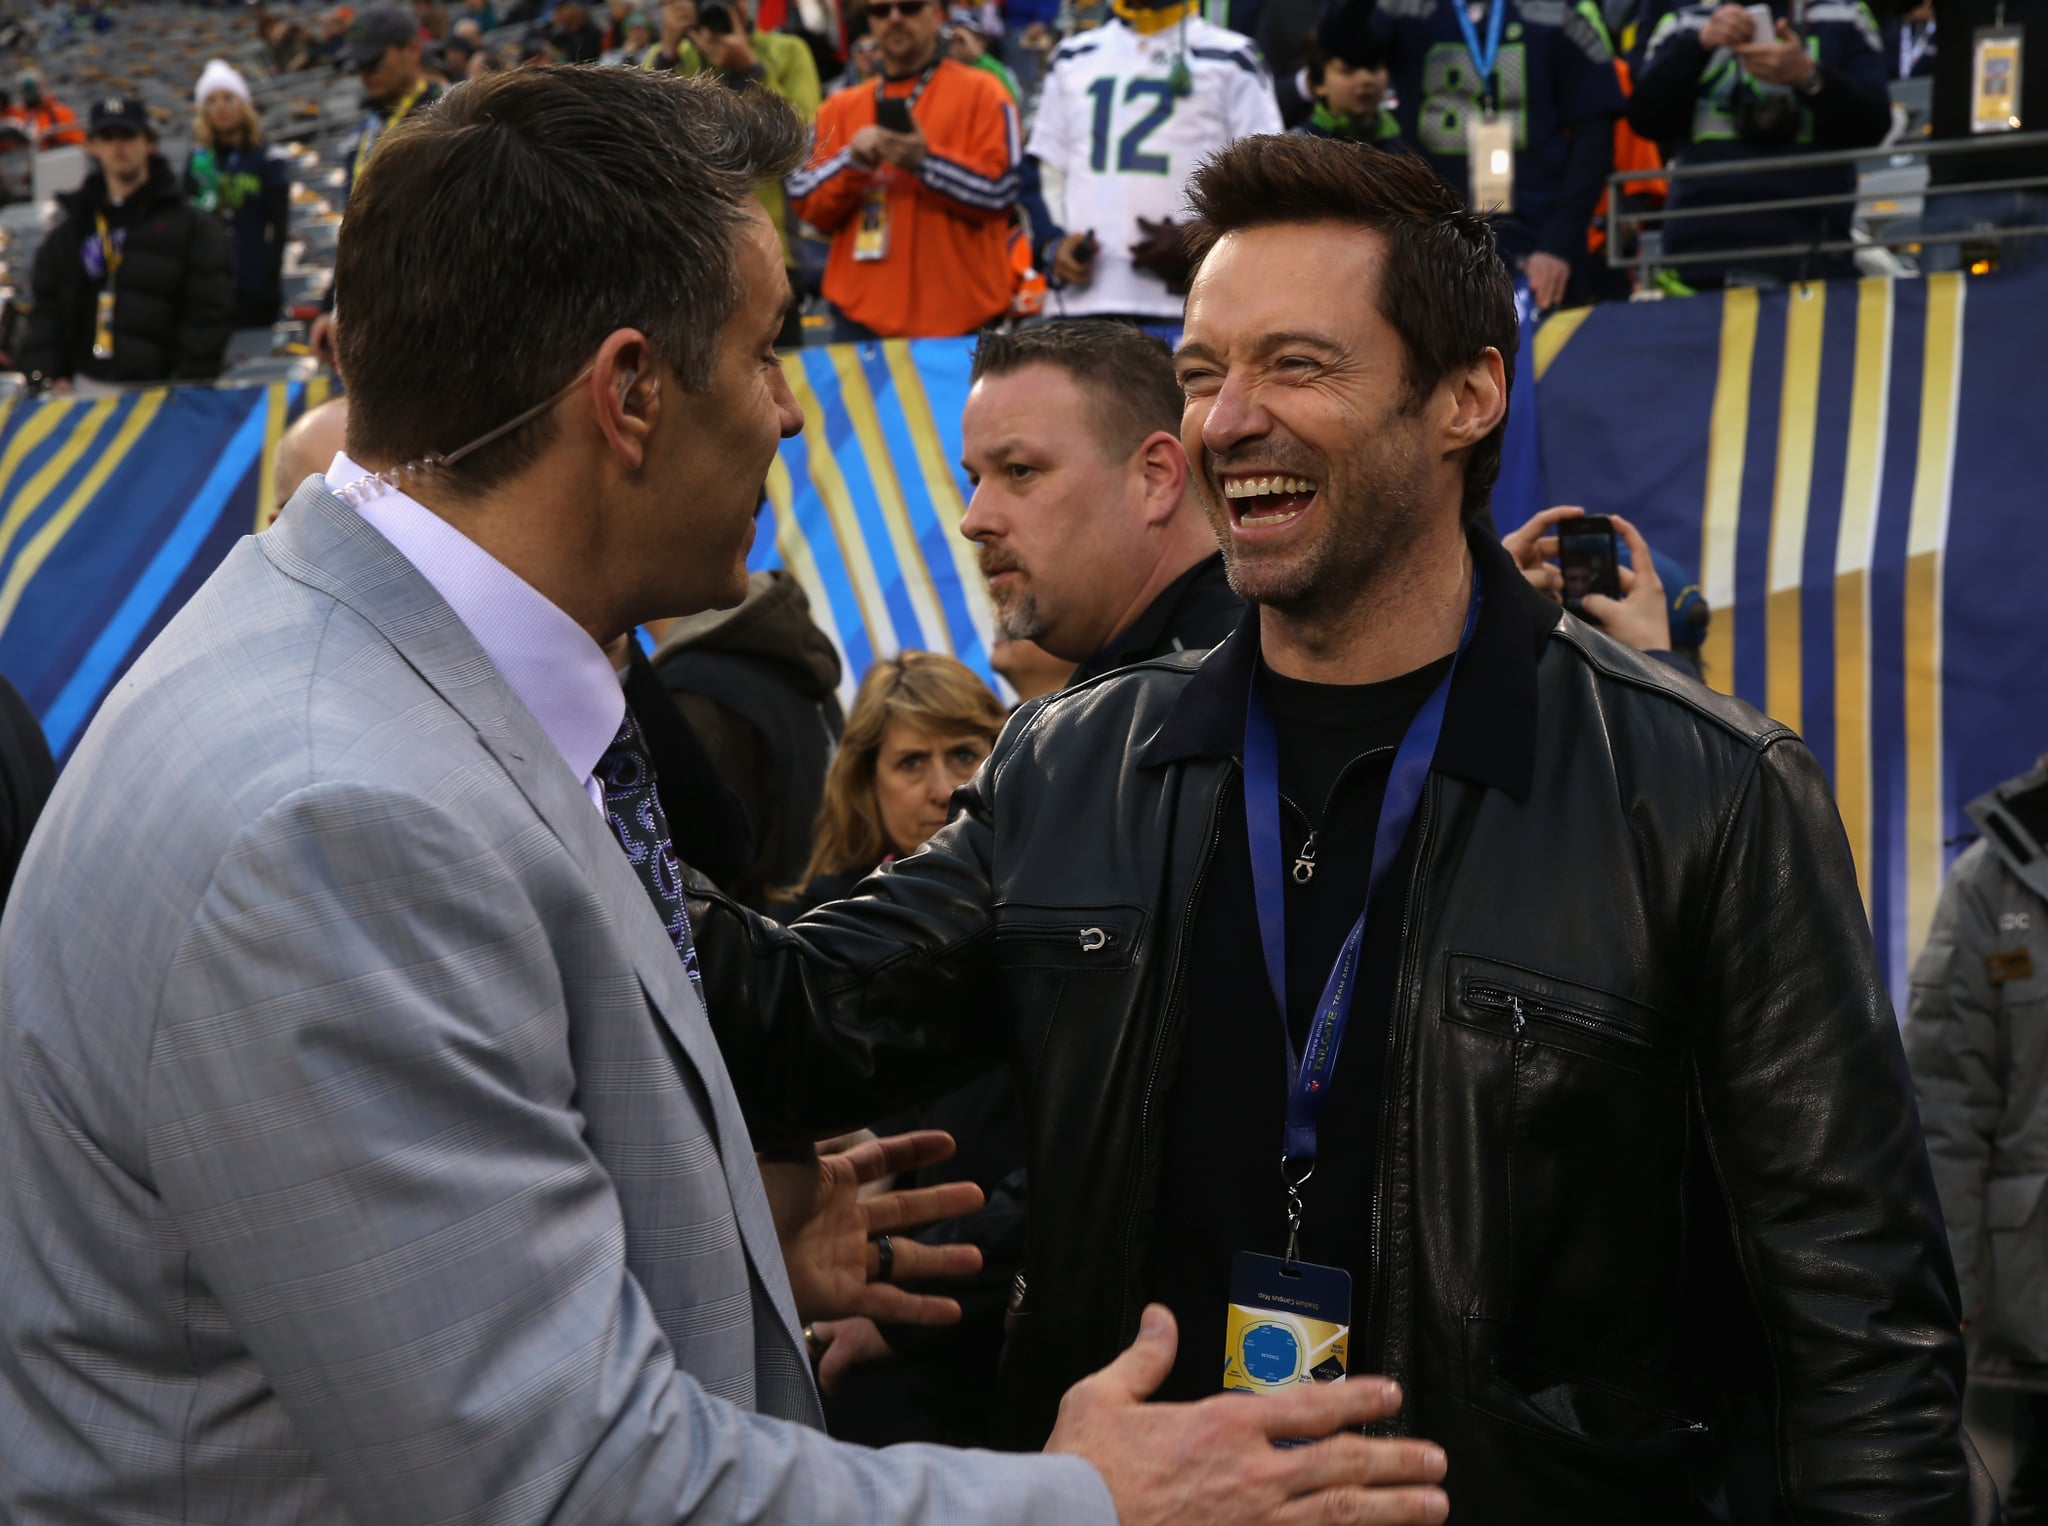 Hugh Jackman laughed on the field during the preshow.